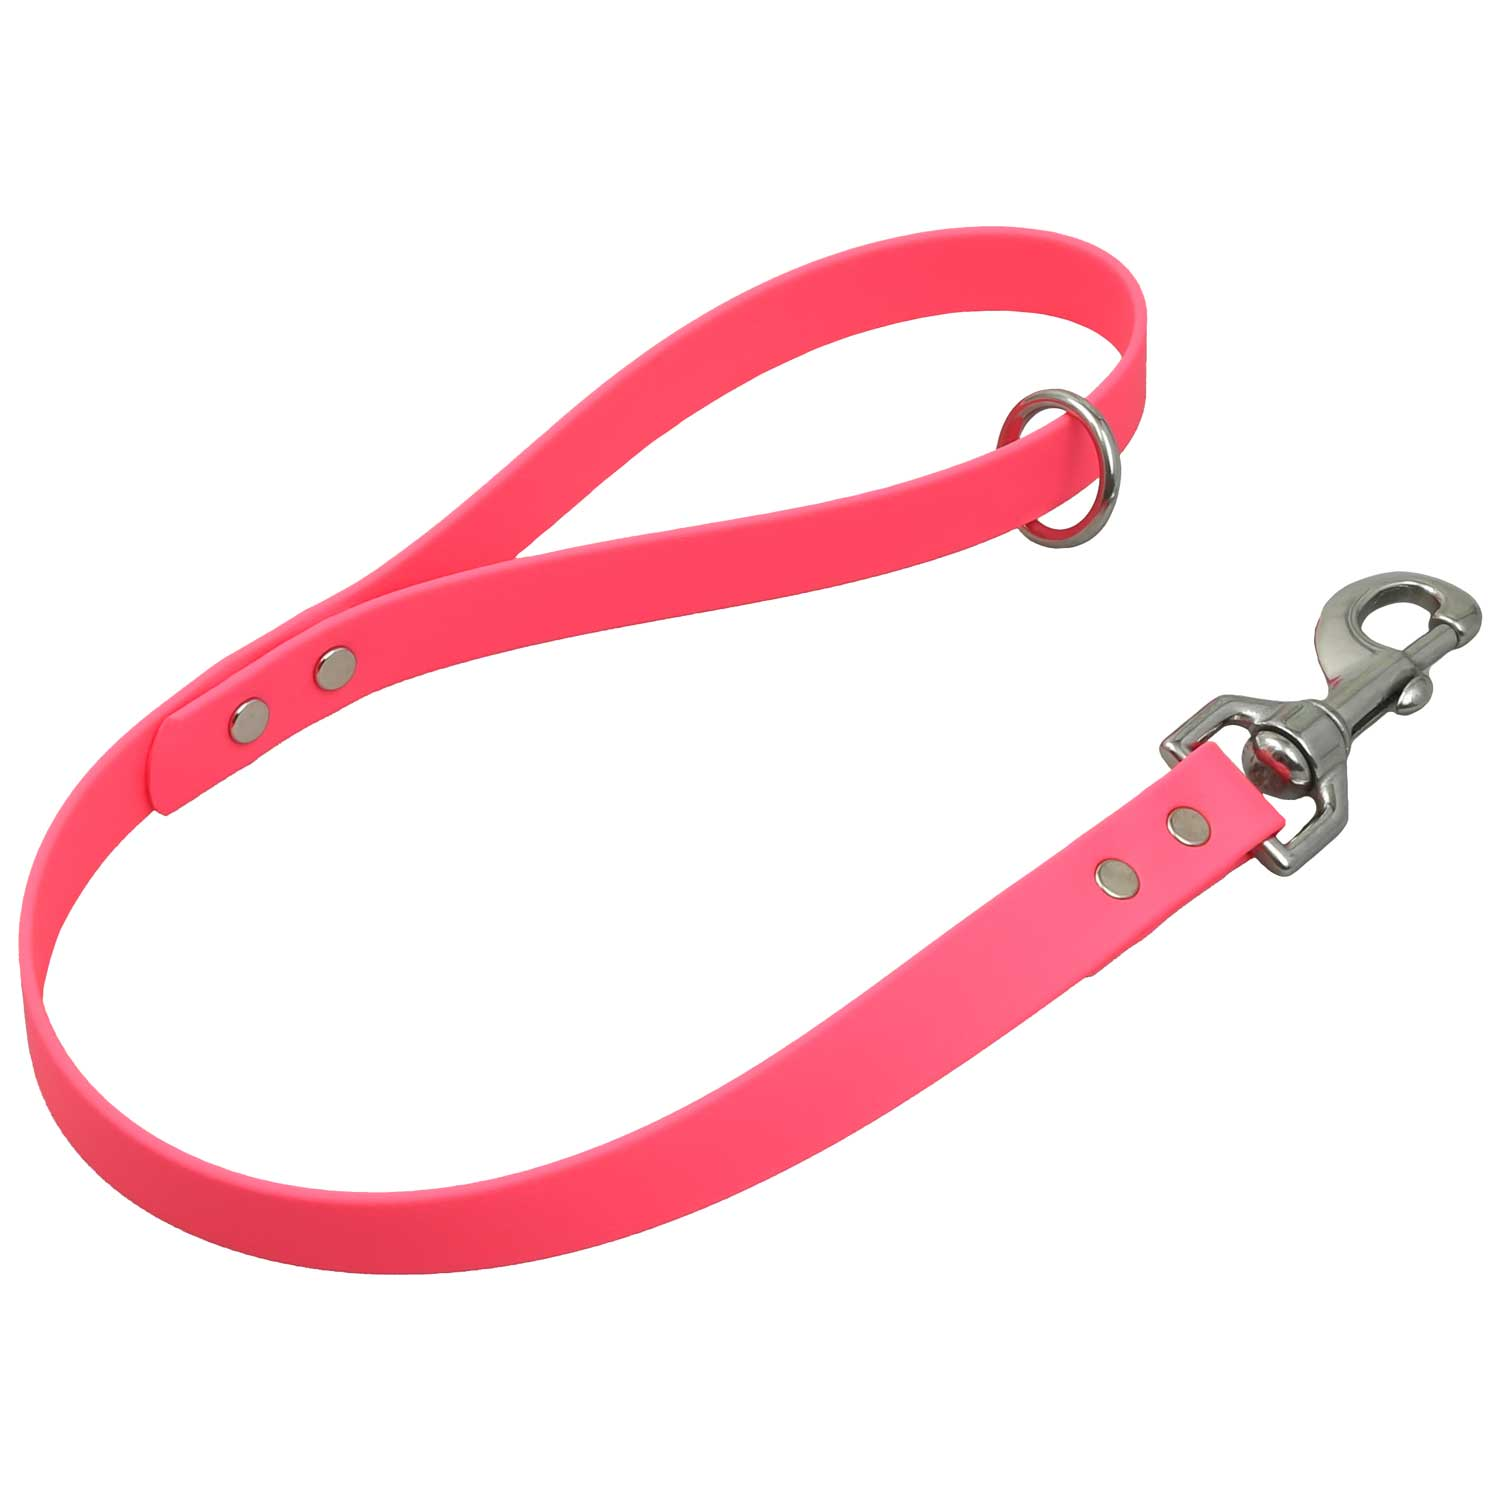 Waterproof Traffic Leash - Pink